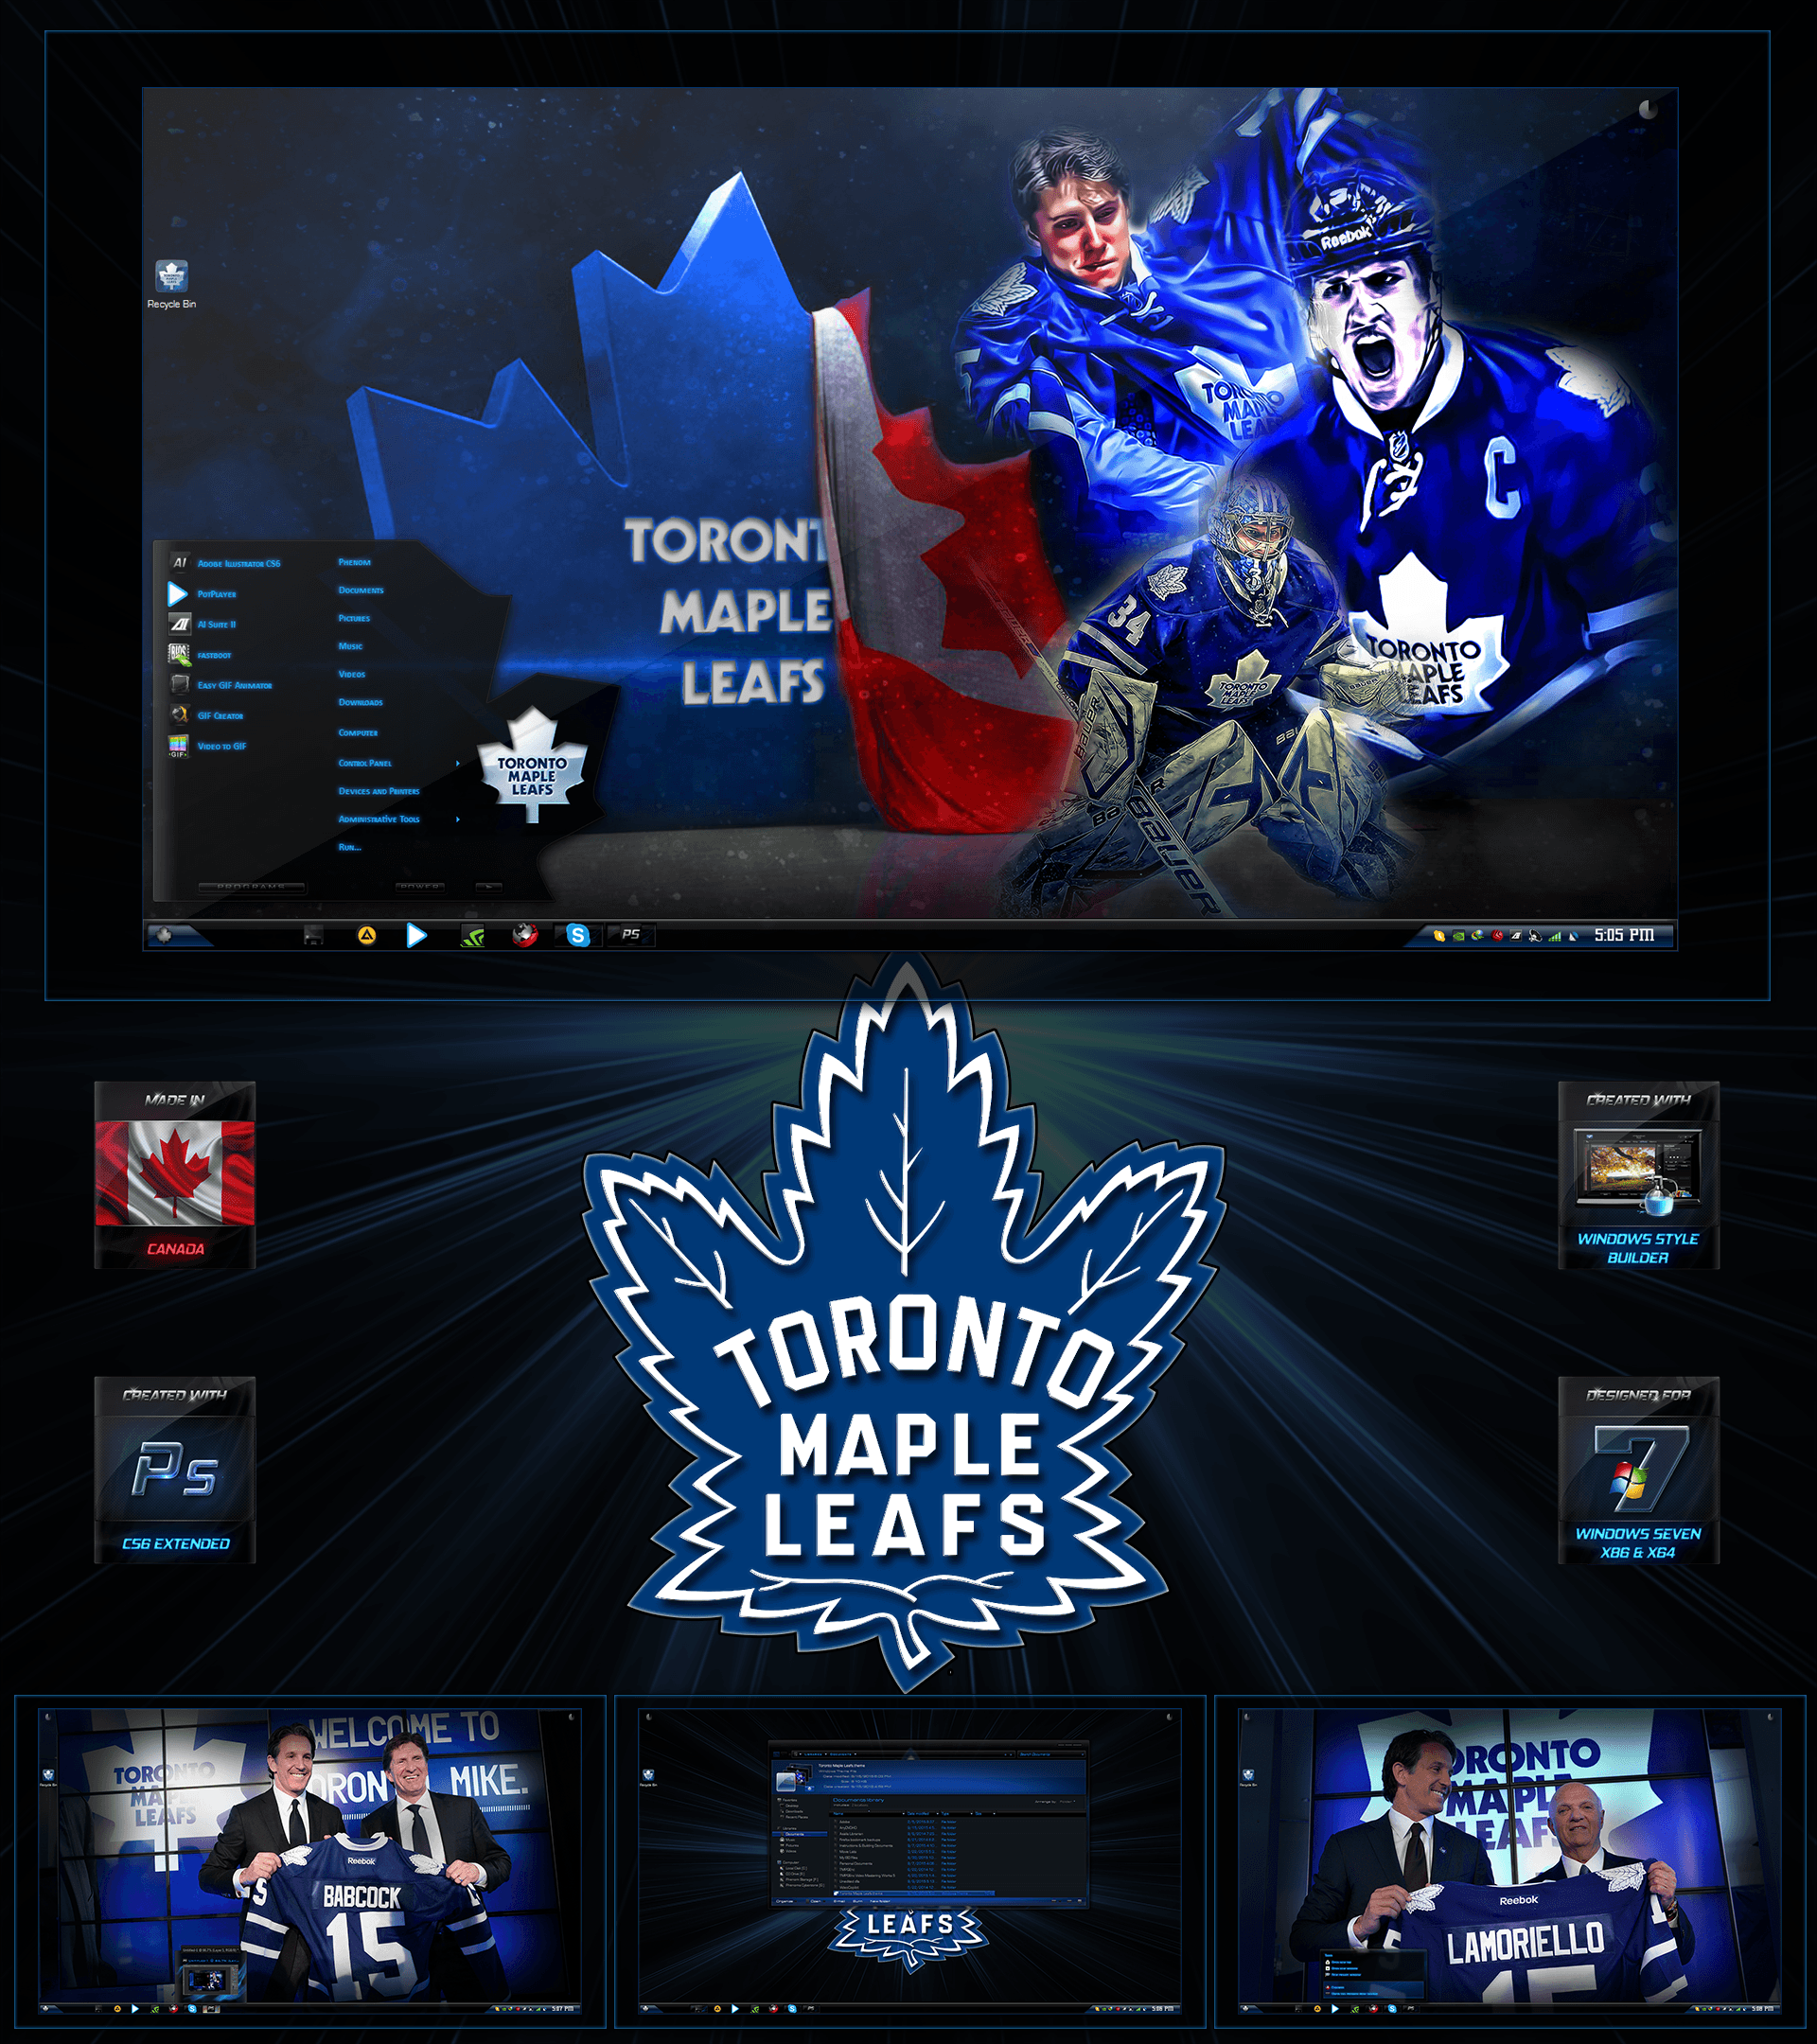 Toronto Maple Leafs Master Edition